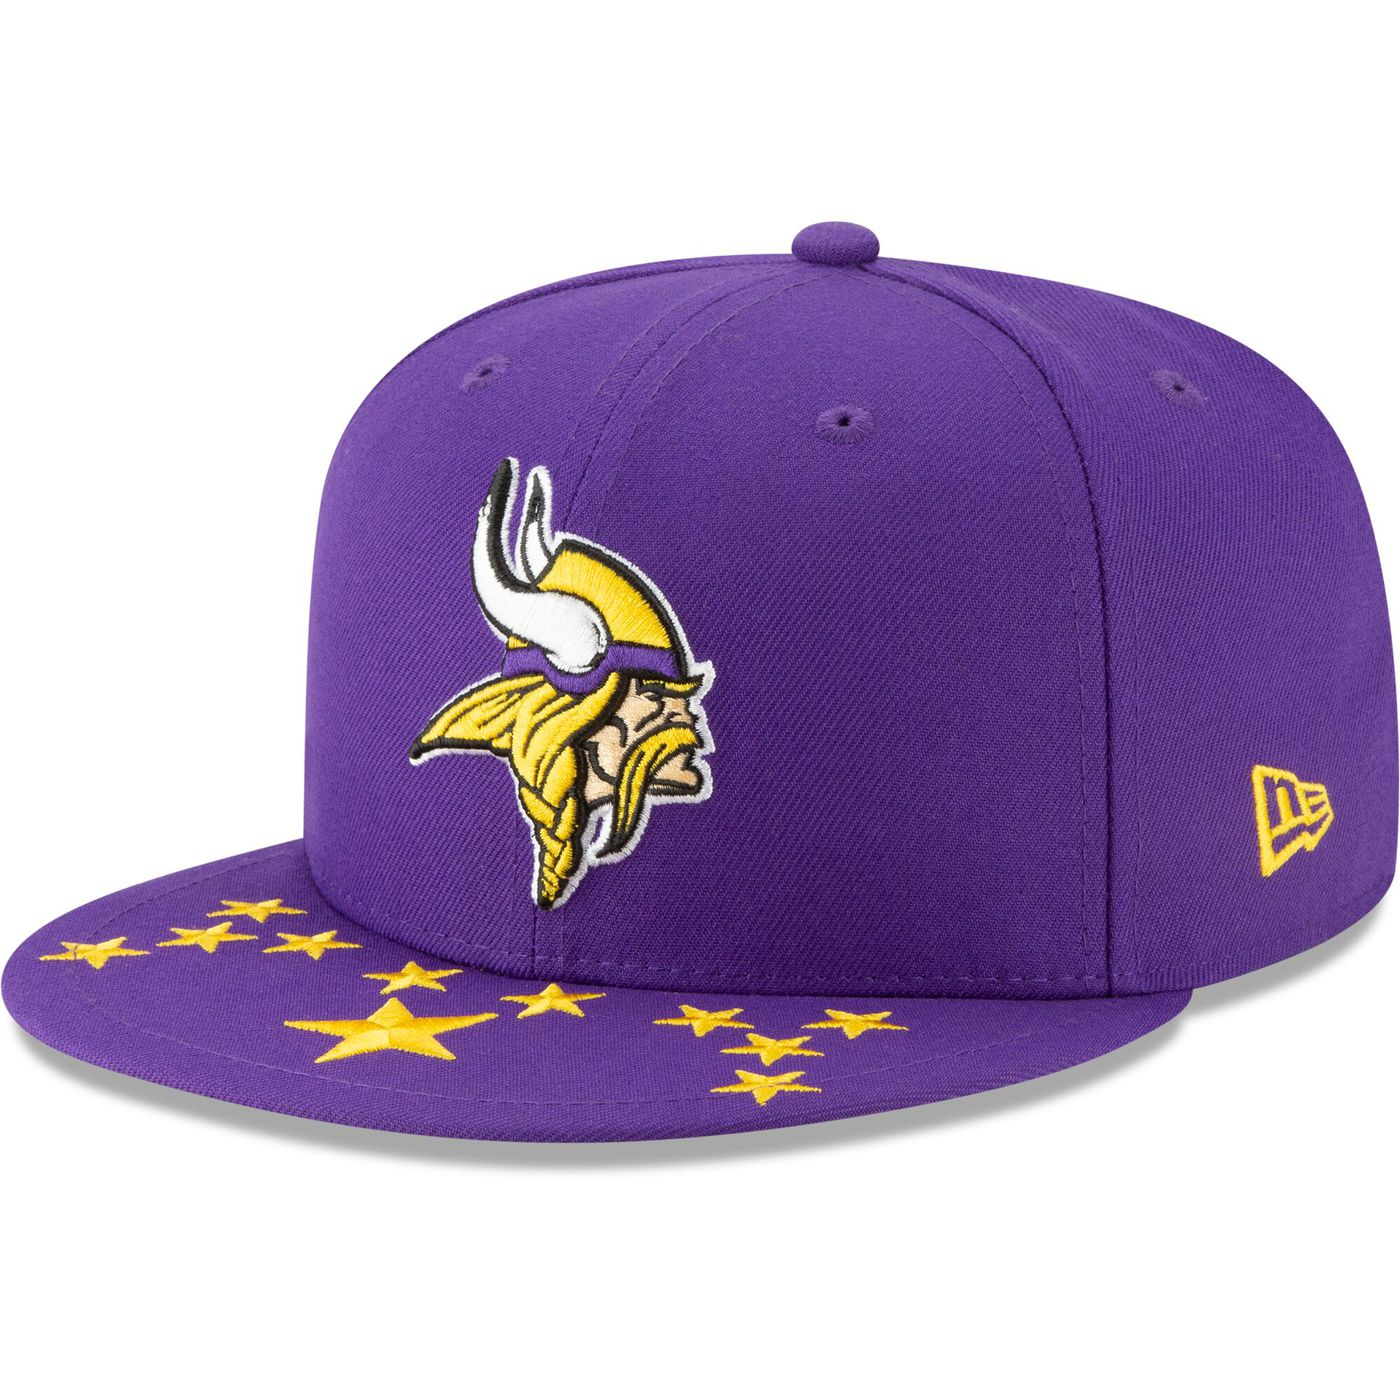 137bb3a1 The New Era 2019 NFL Draft hats drop with new looks for every team ...